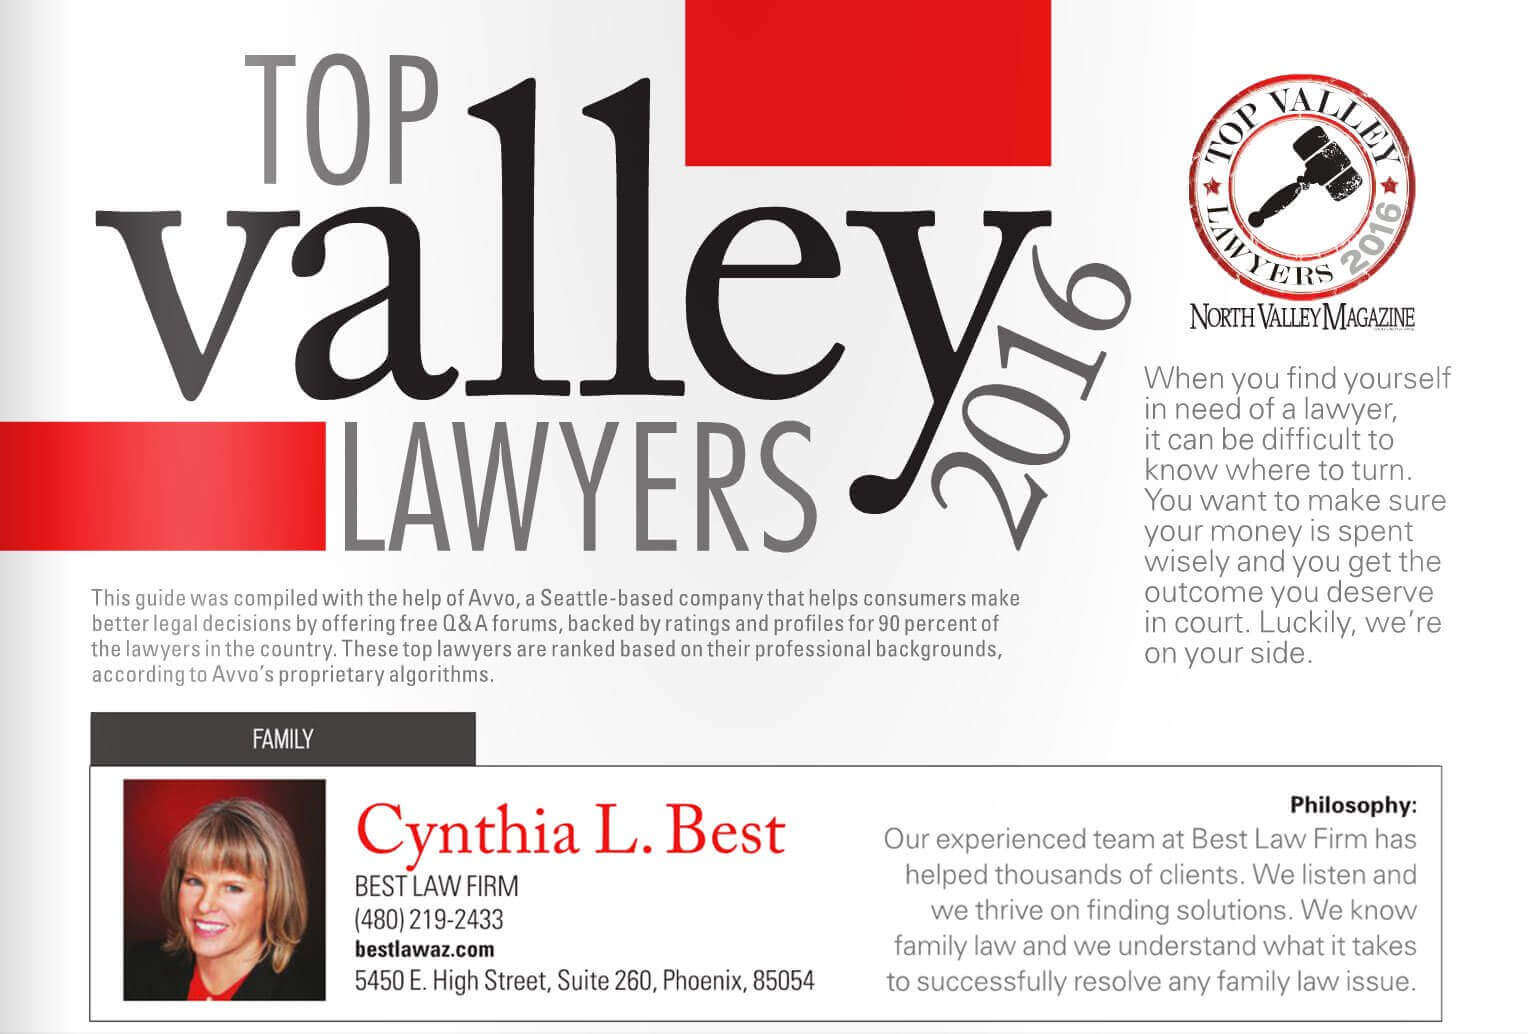 top-valley-lawyers-maga